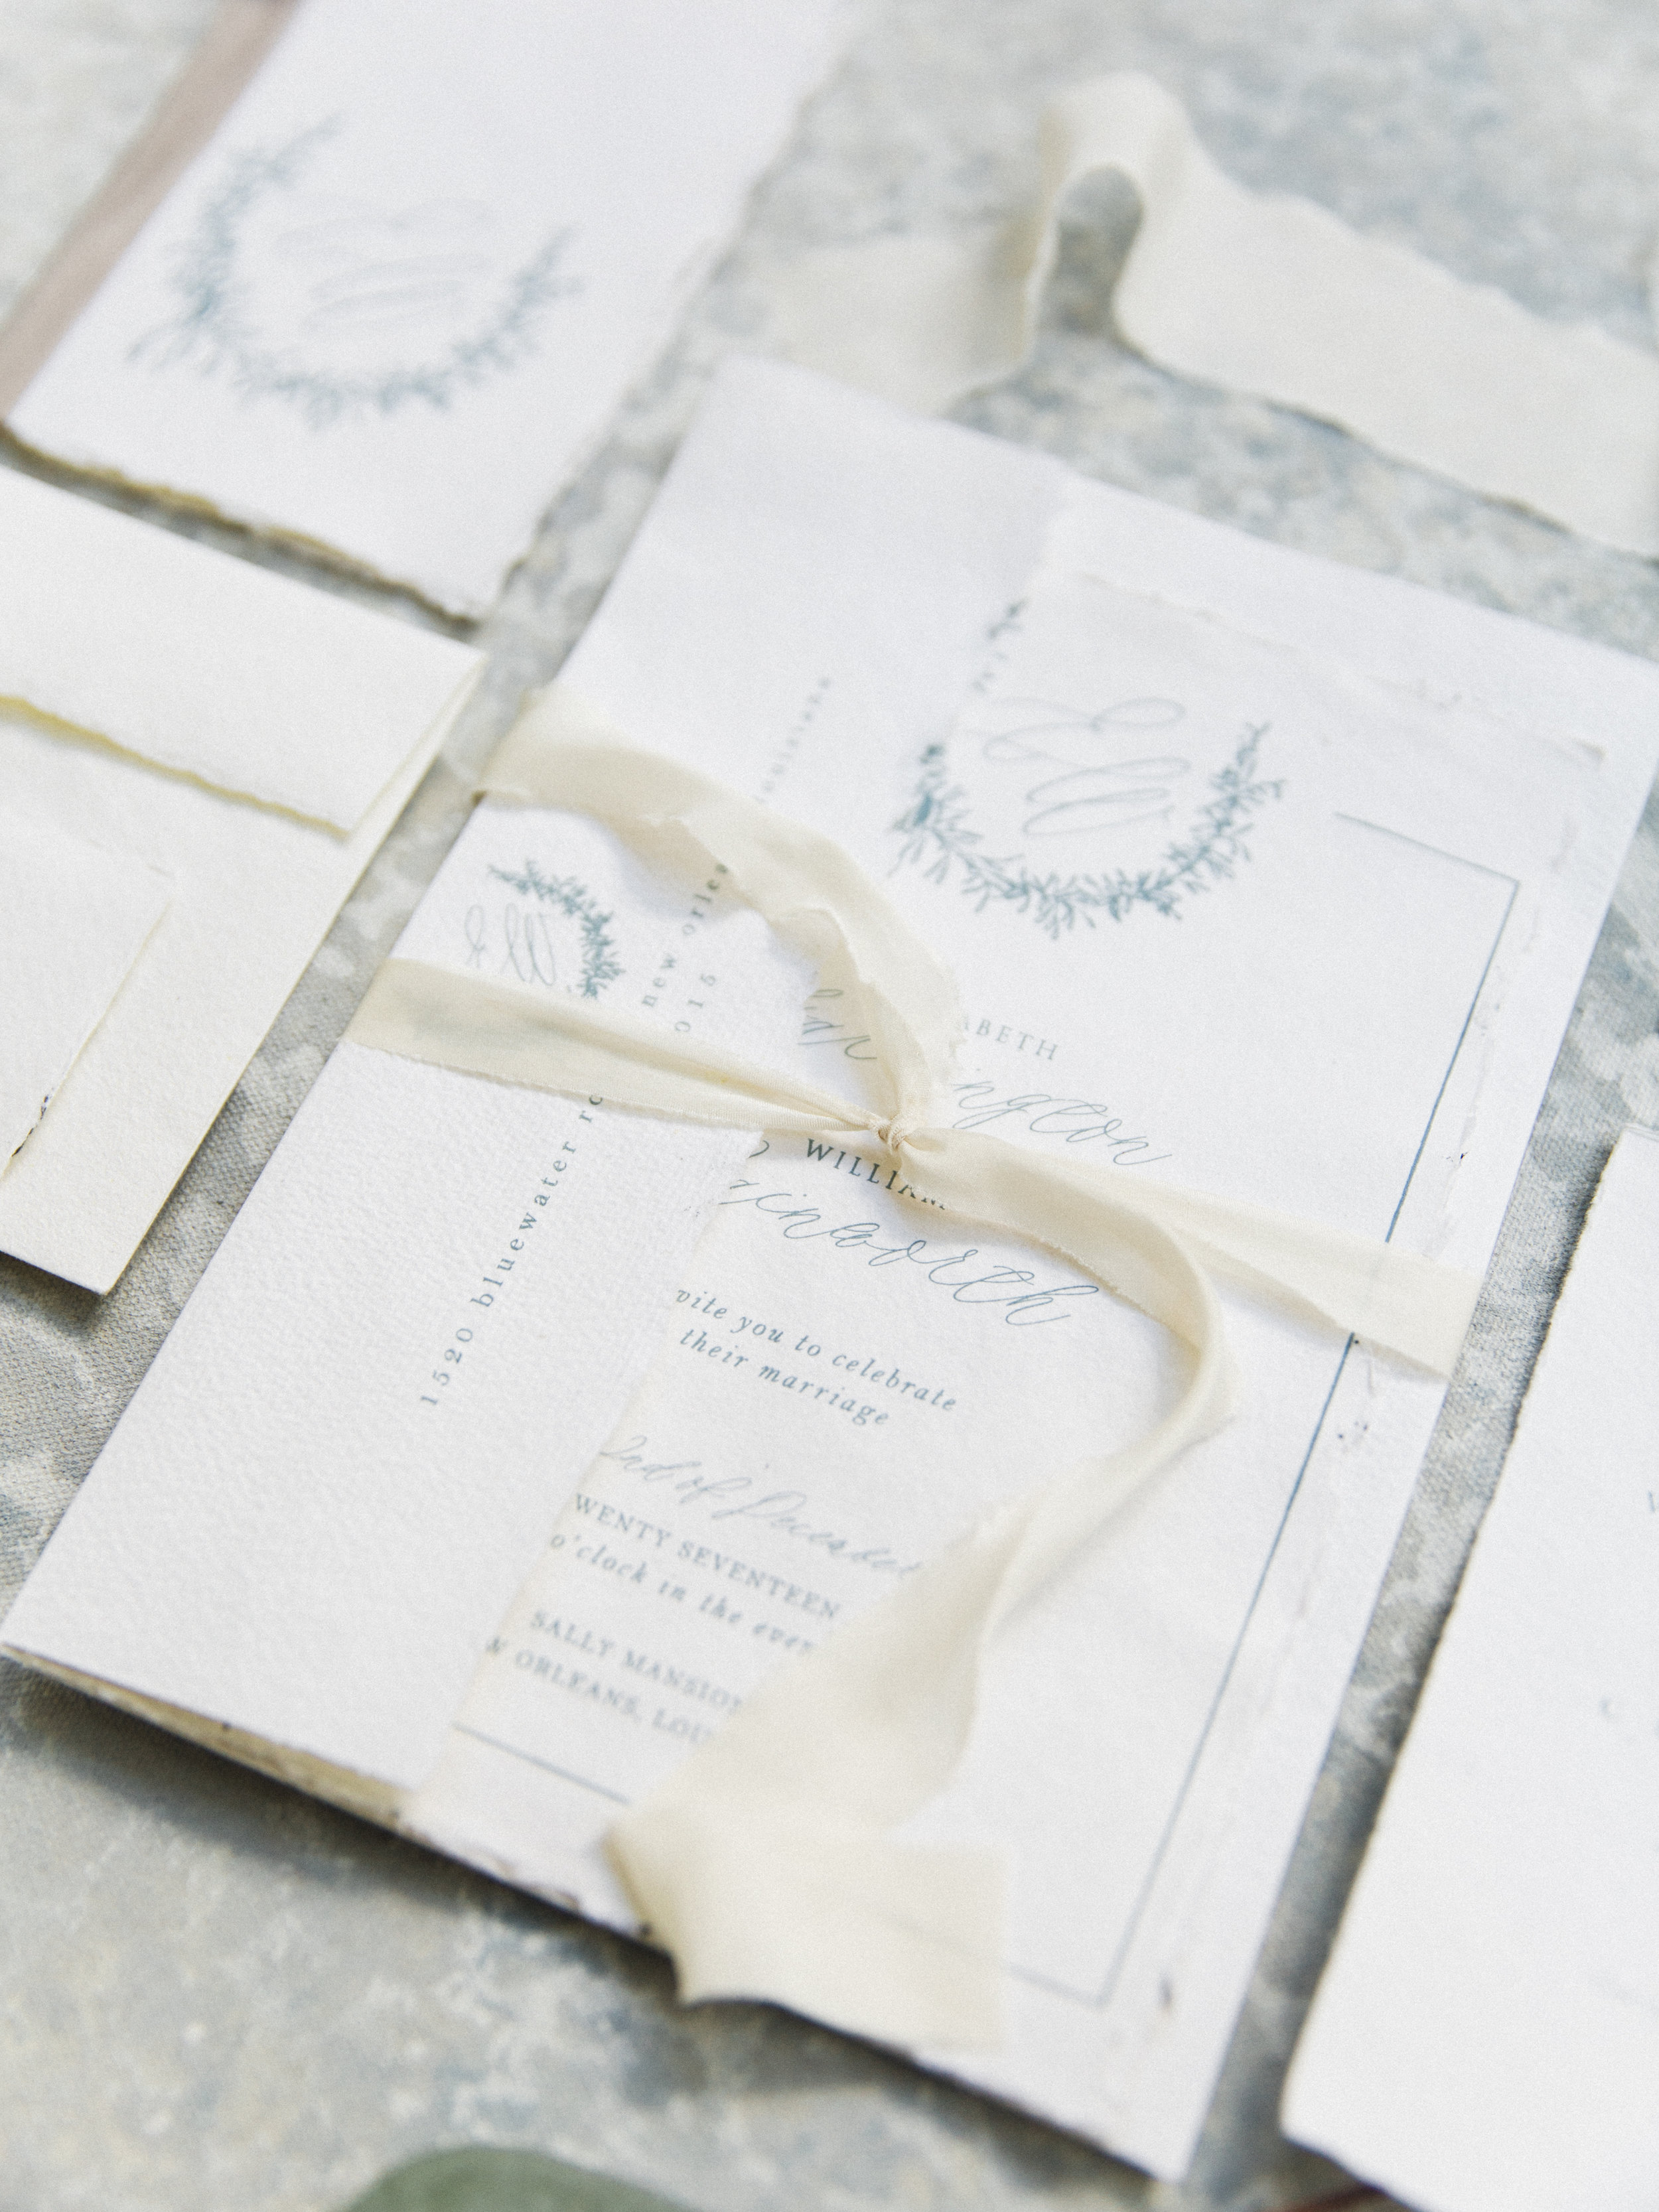 dusty blue wedding stationery || The Little Blue Chair  by Hope Johnson || thelittlebluechair.com/theonepageweddingplanner